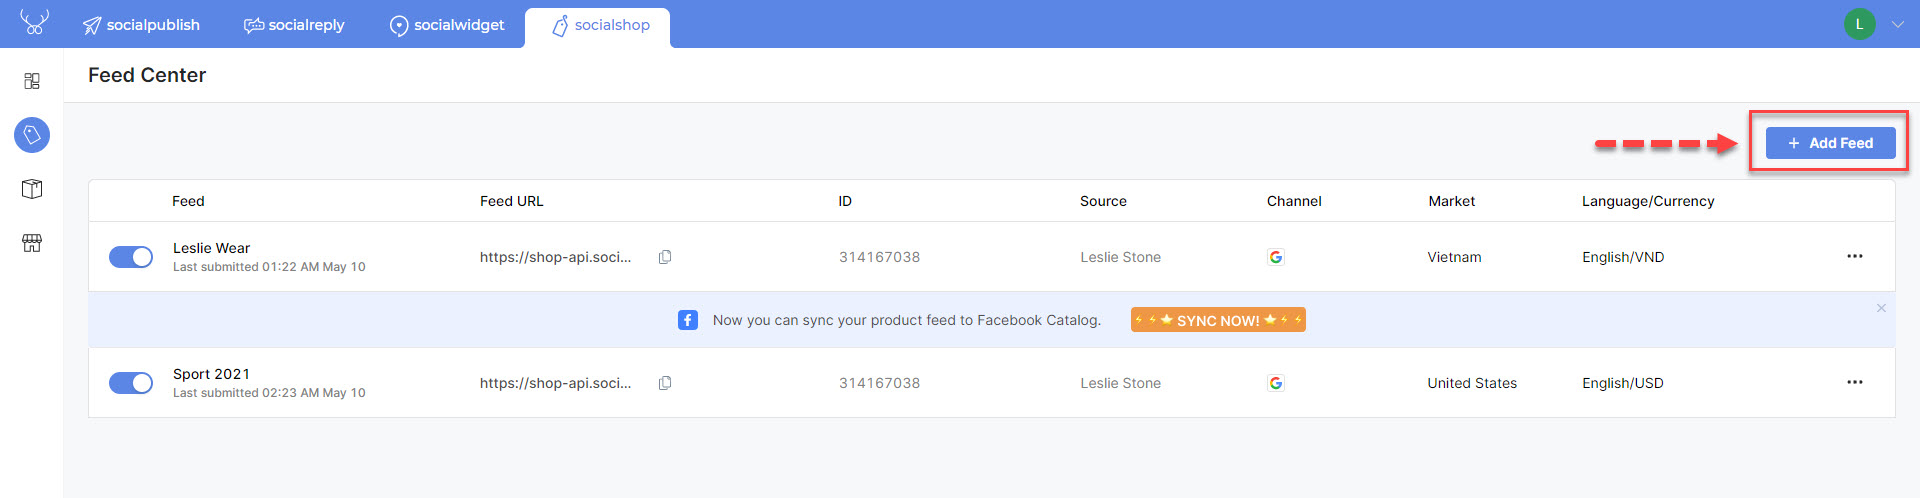 Click on the button here to add a new product feed - Sync Shopify Products to Facebook